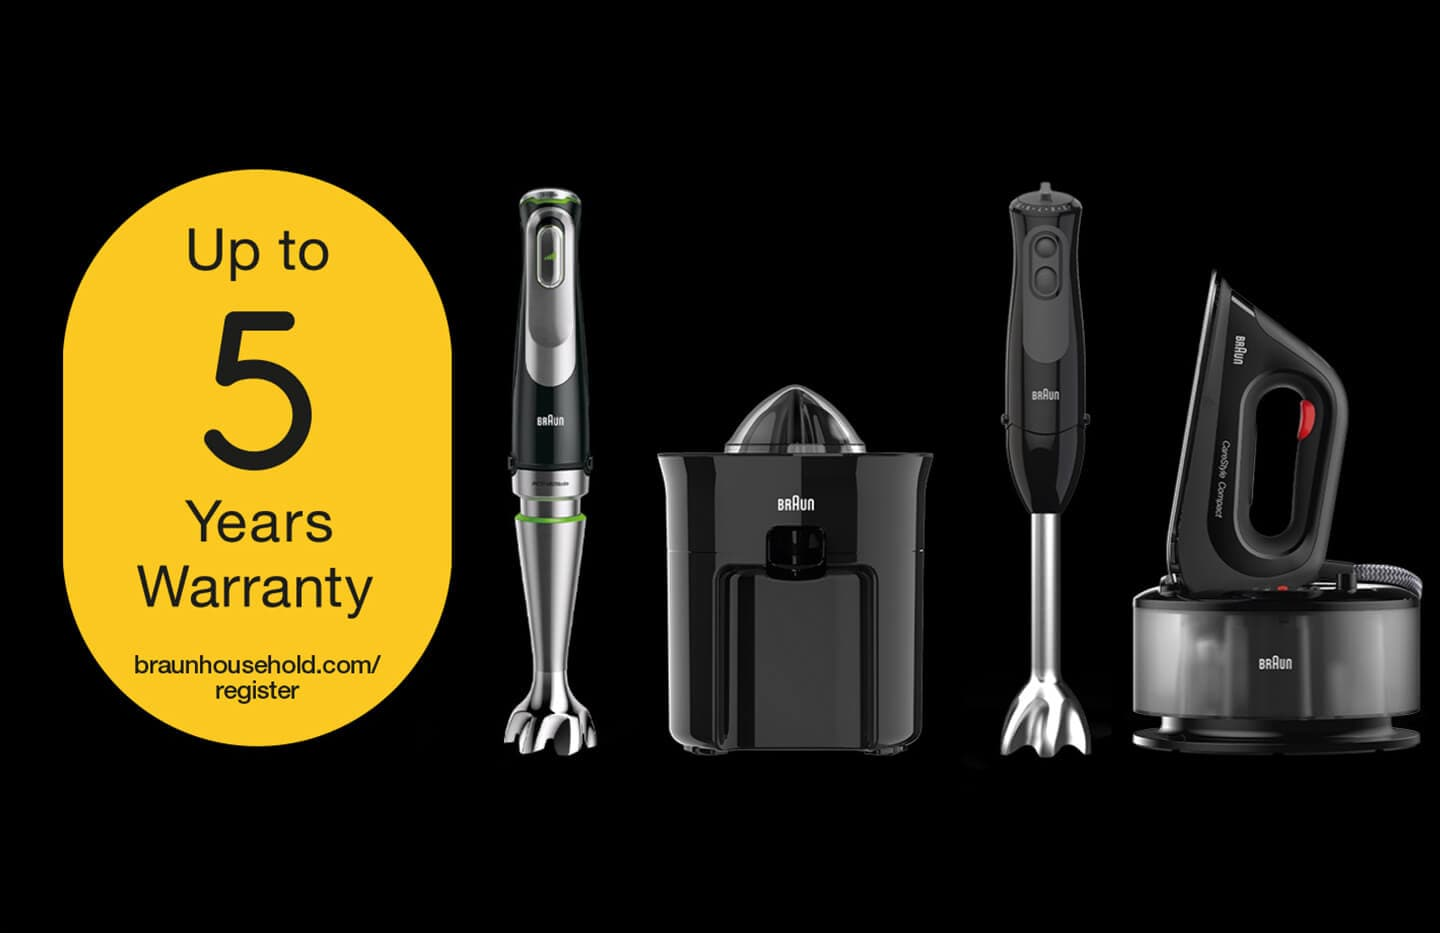 Braun 100 years – Built To Last. Up to 5 years garantie